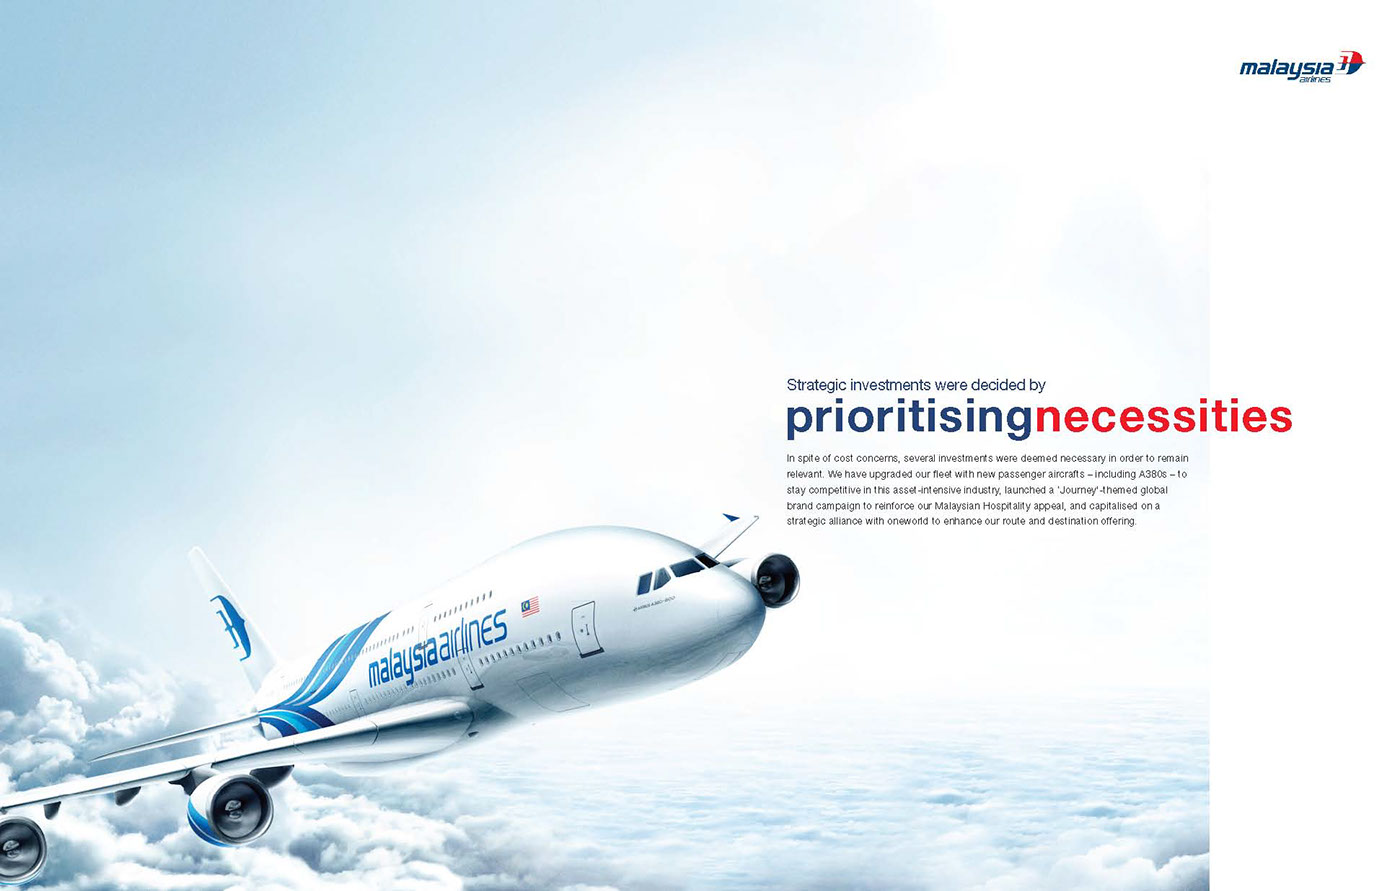 malaysia airlines corporate policy and strategy With a new ceo and an evolving marketing strategy malaysia airlines struggles to salvage its image a year after malaysia's tourism numbers have gone.